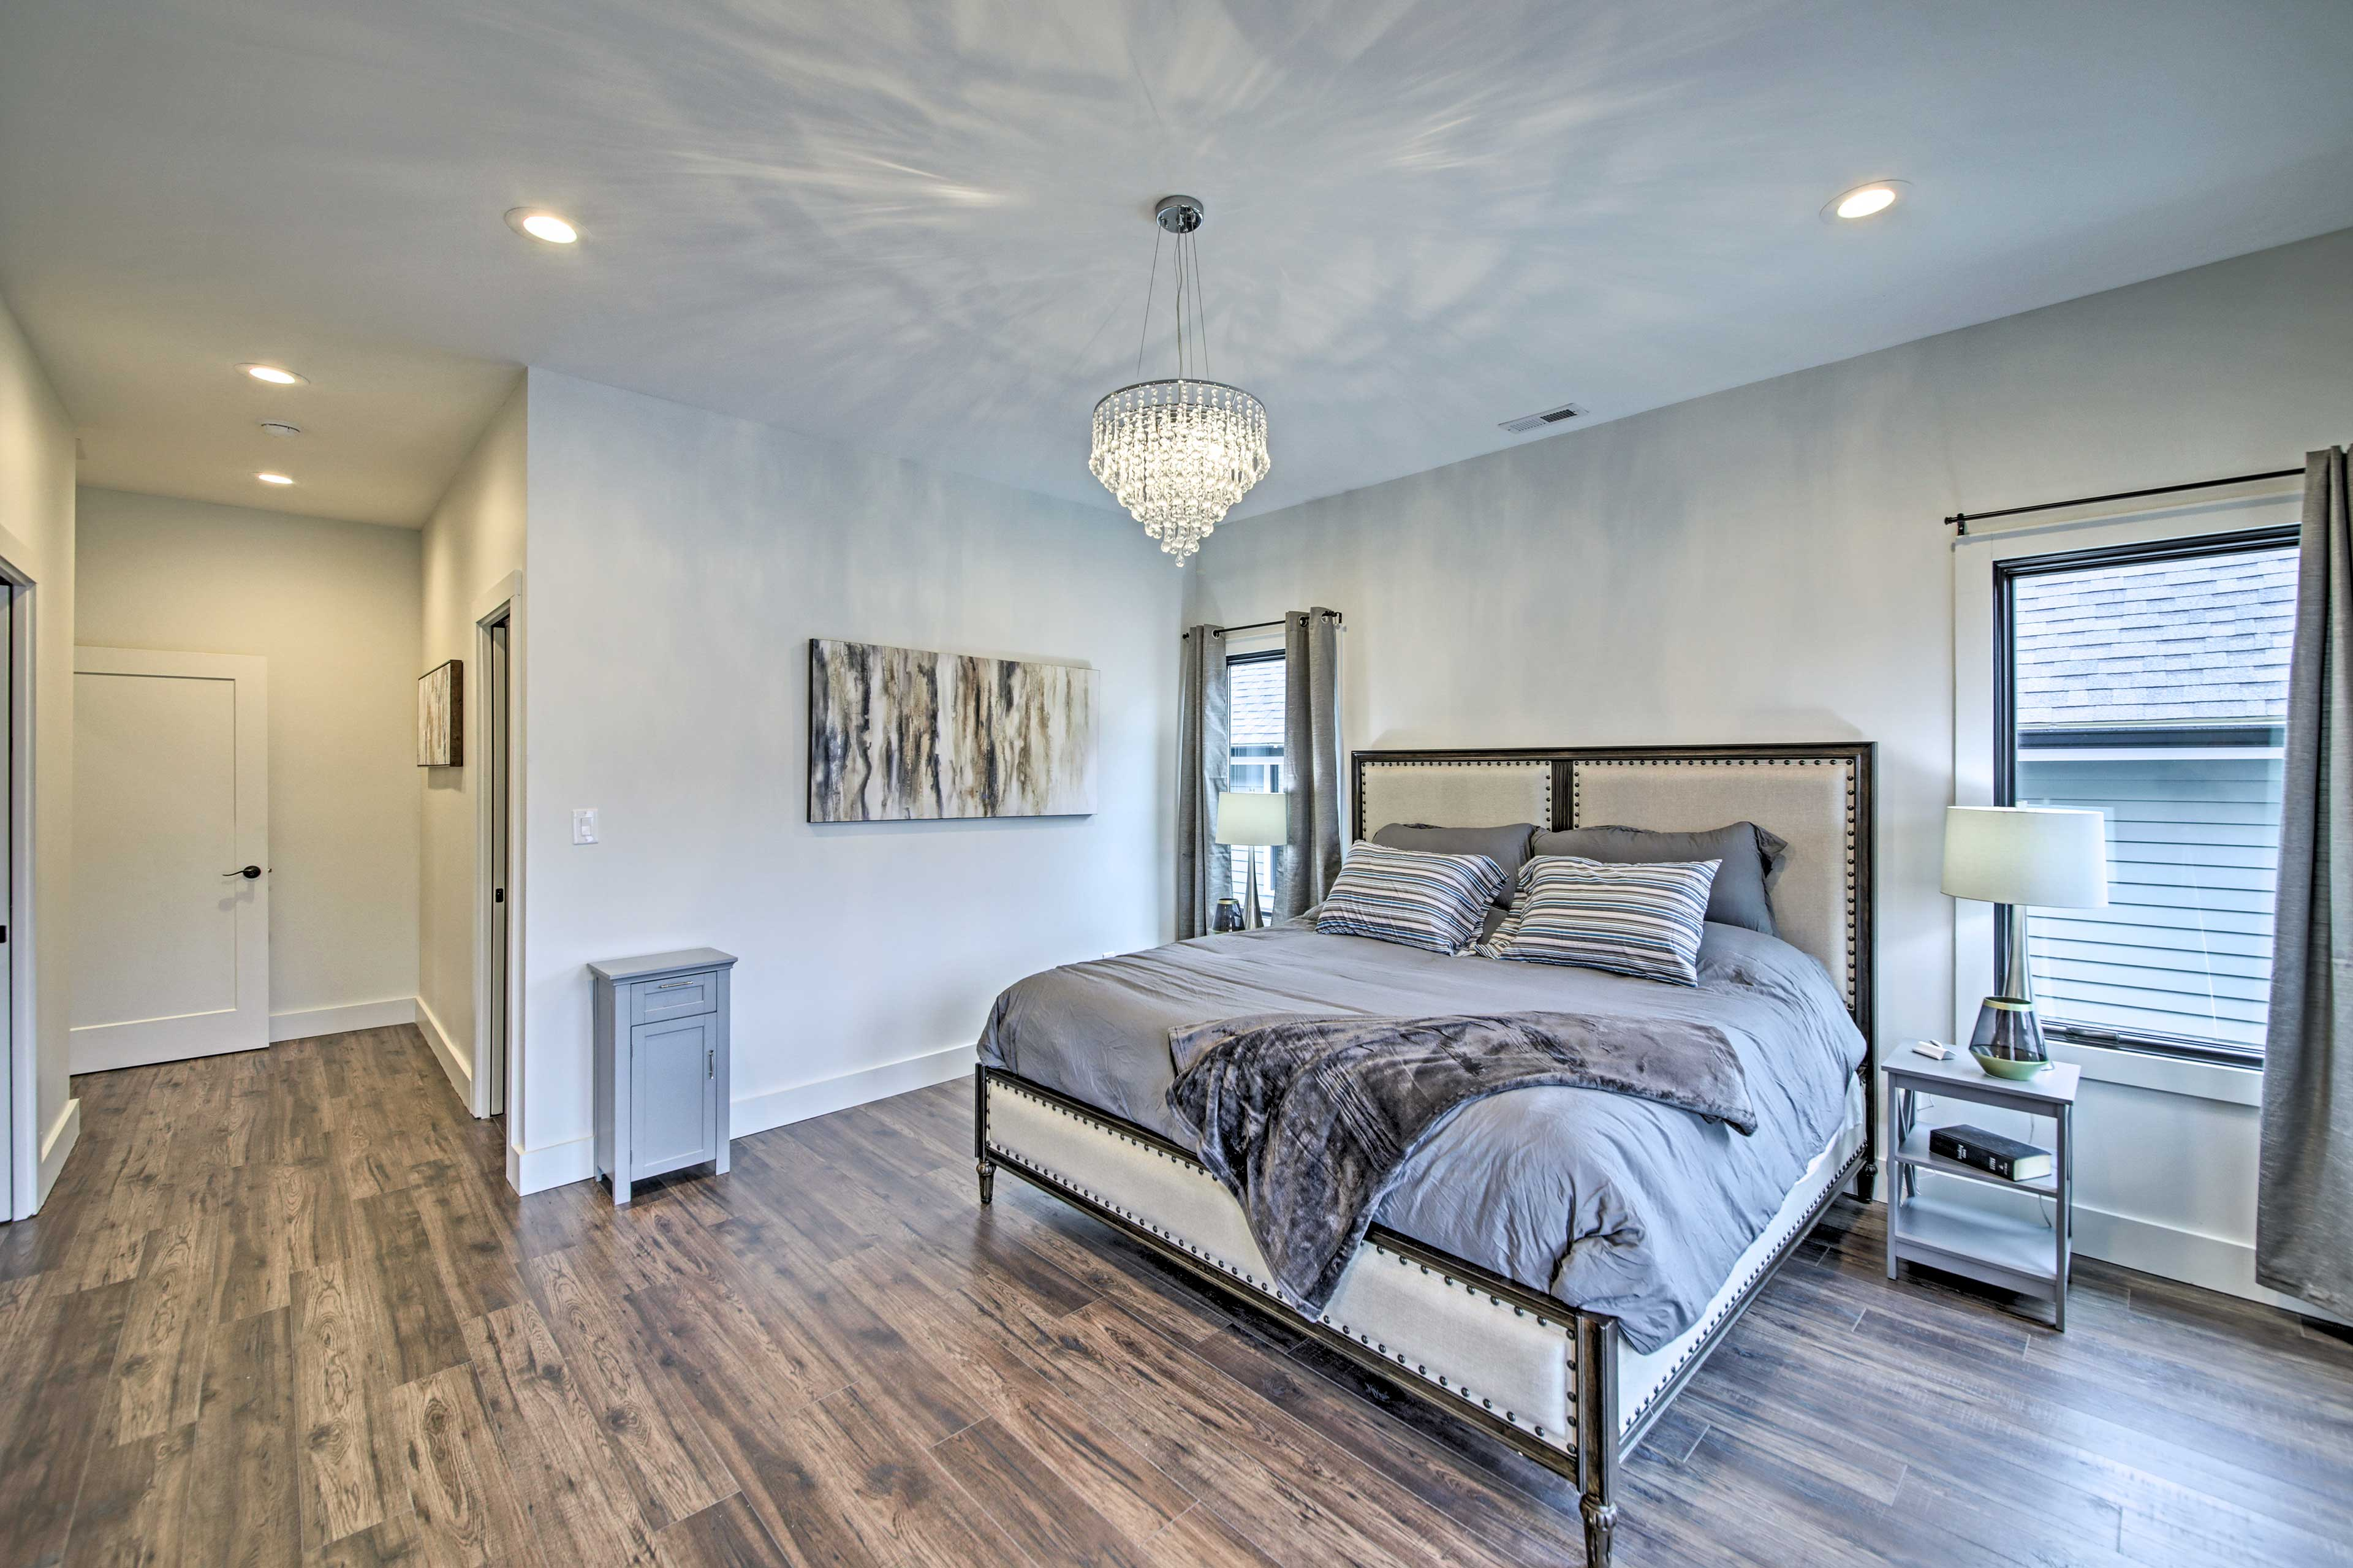 The master bedroom boasts a king bed.